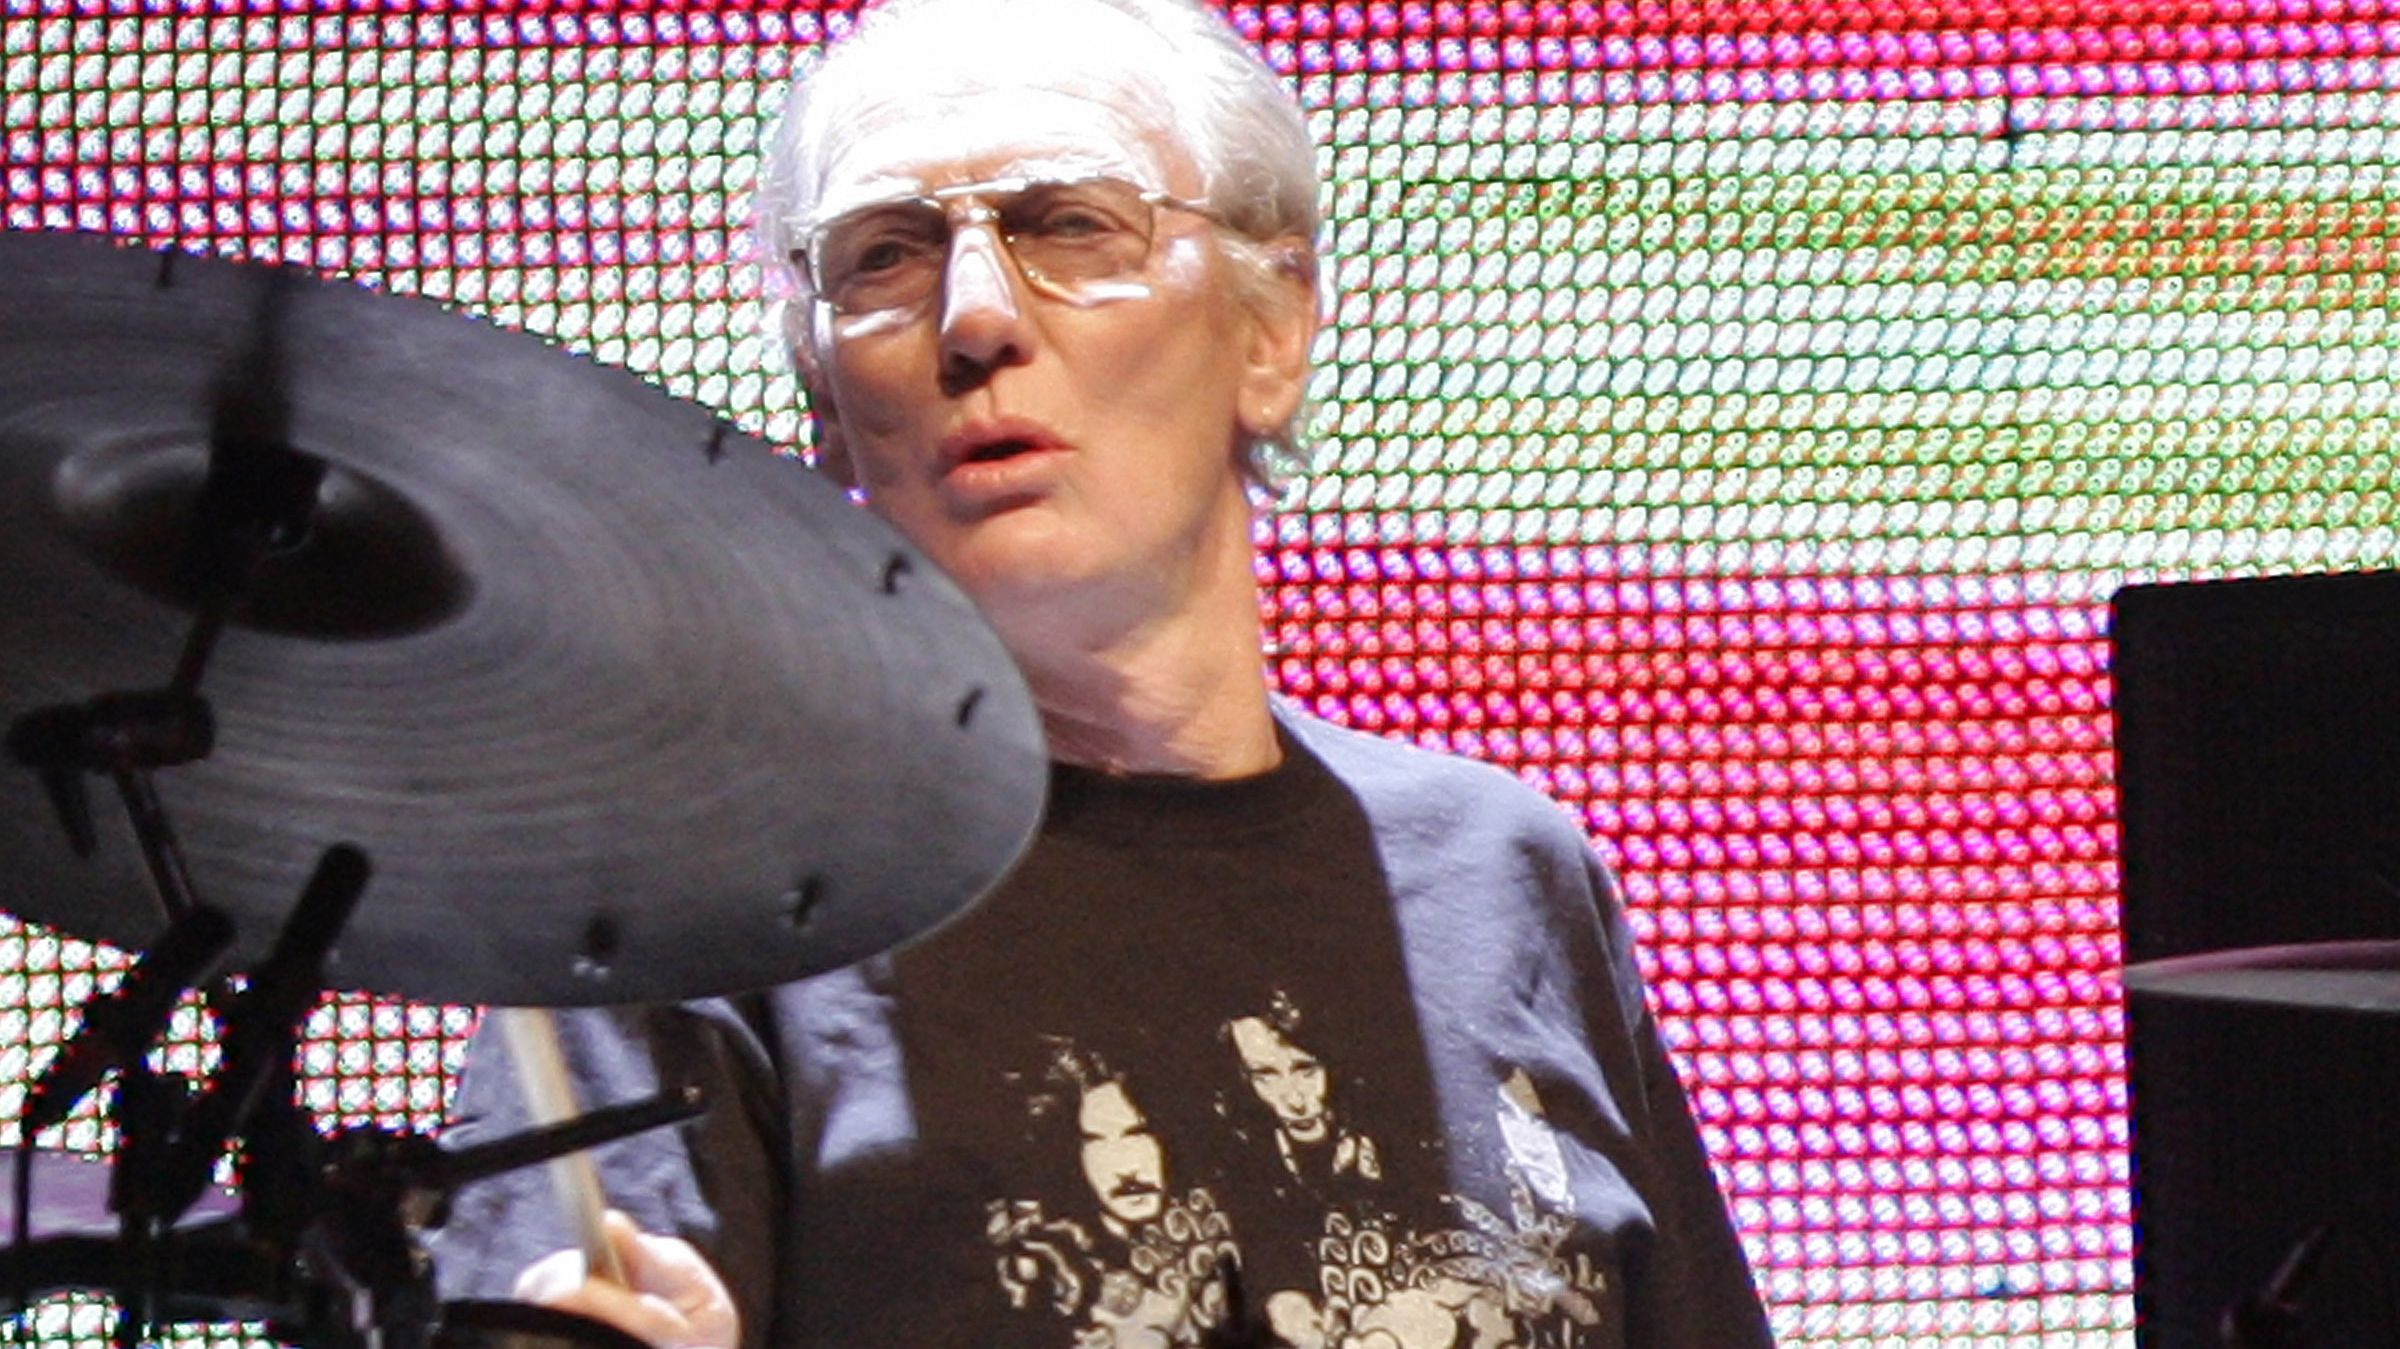 Ginger Baker bei einem Reunion-Konzert von Cream am 26. Oktober 2005 im Madison Square Garden in New York.